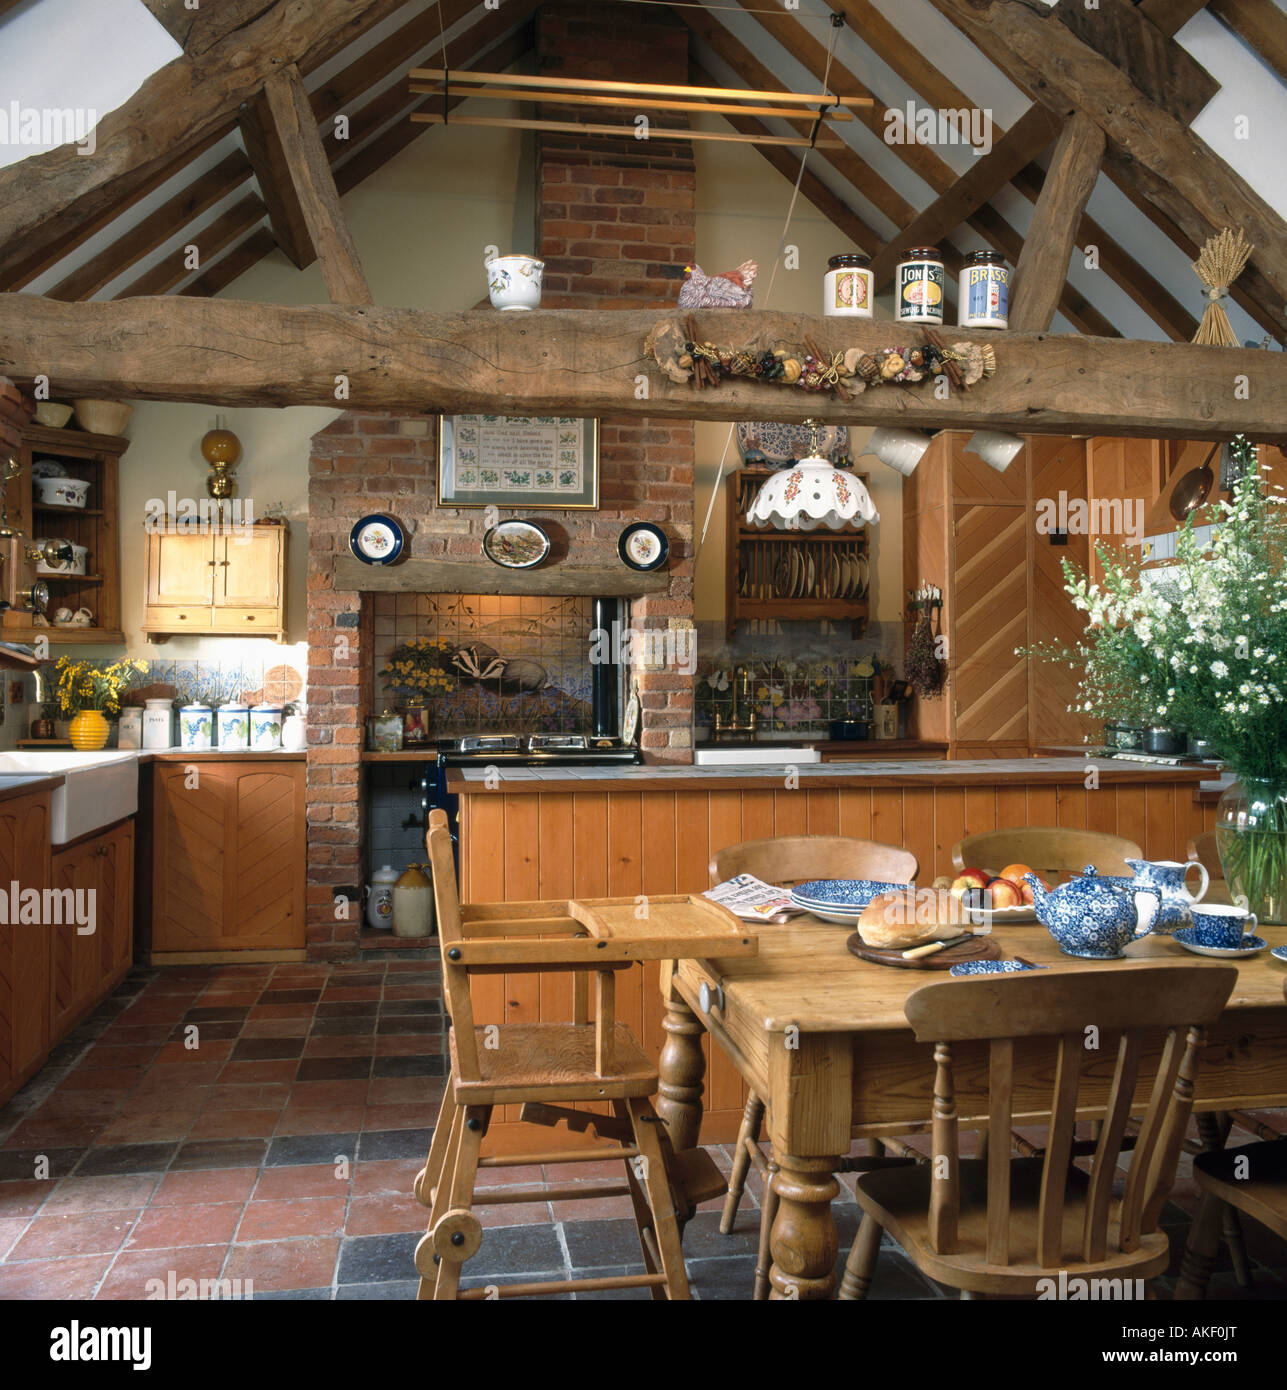 Diningrooms Interiors Kitchens Traditional Stockfotos & Diningrooms ...